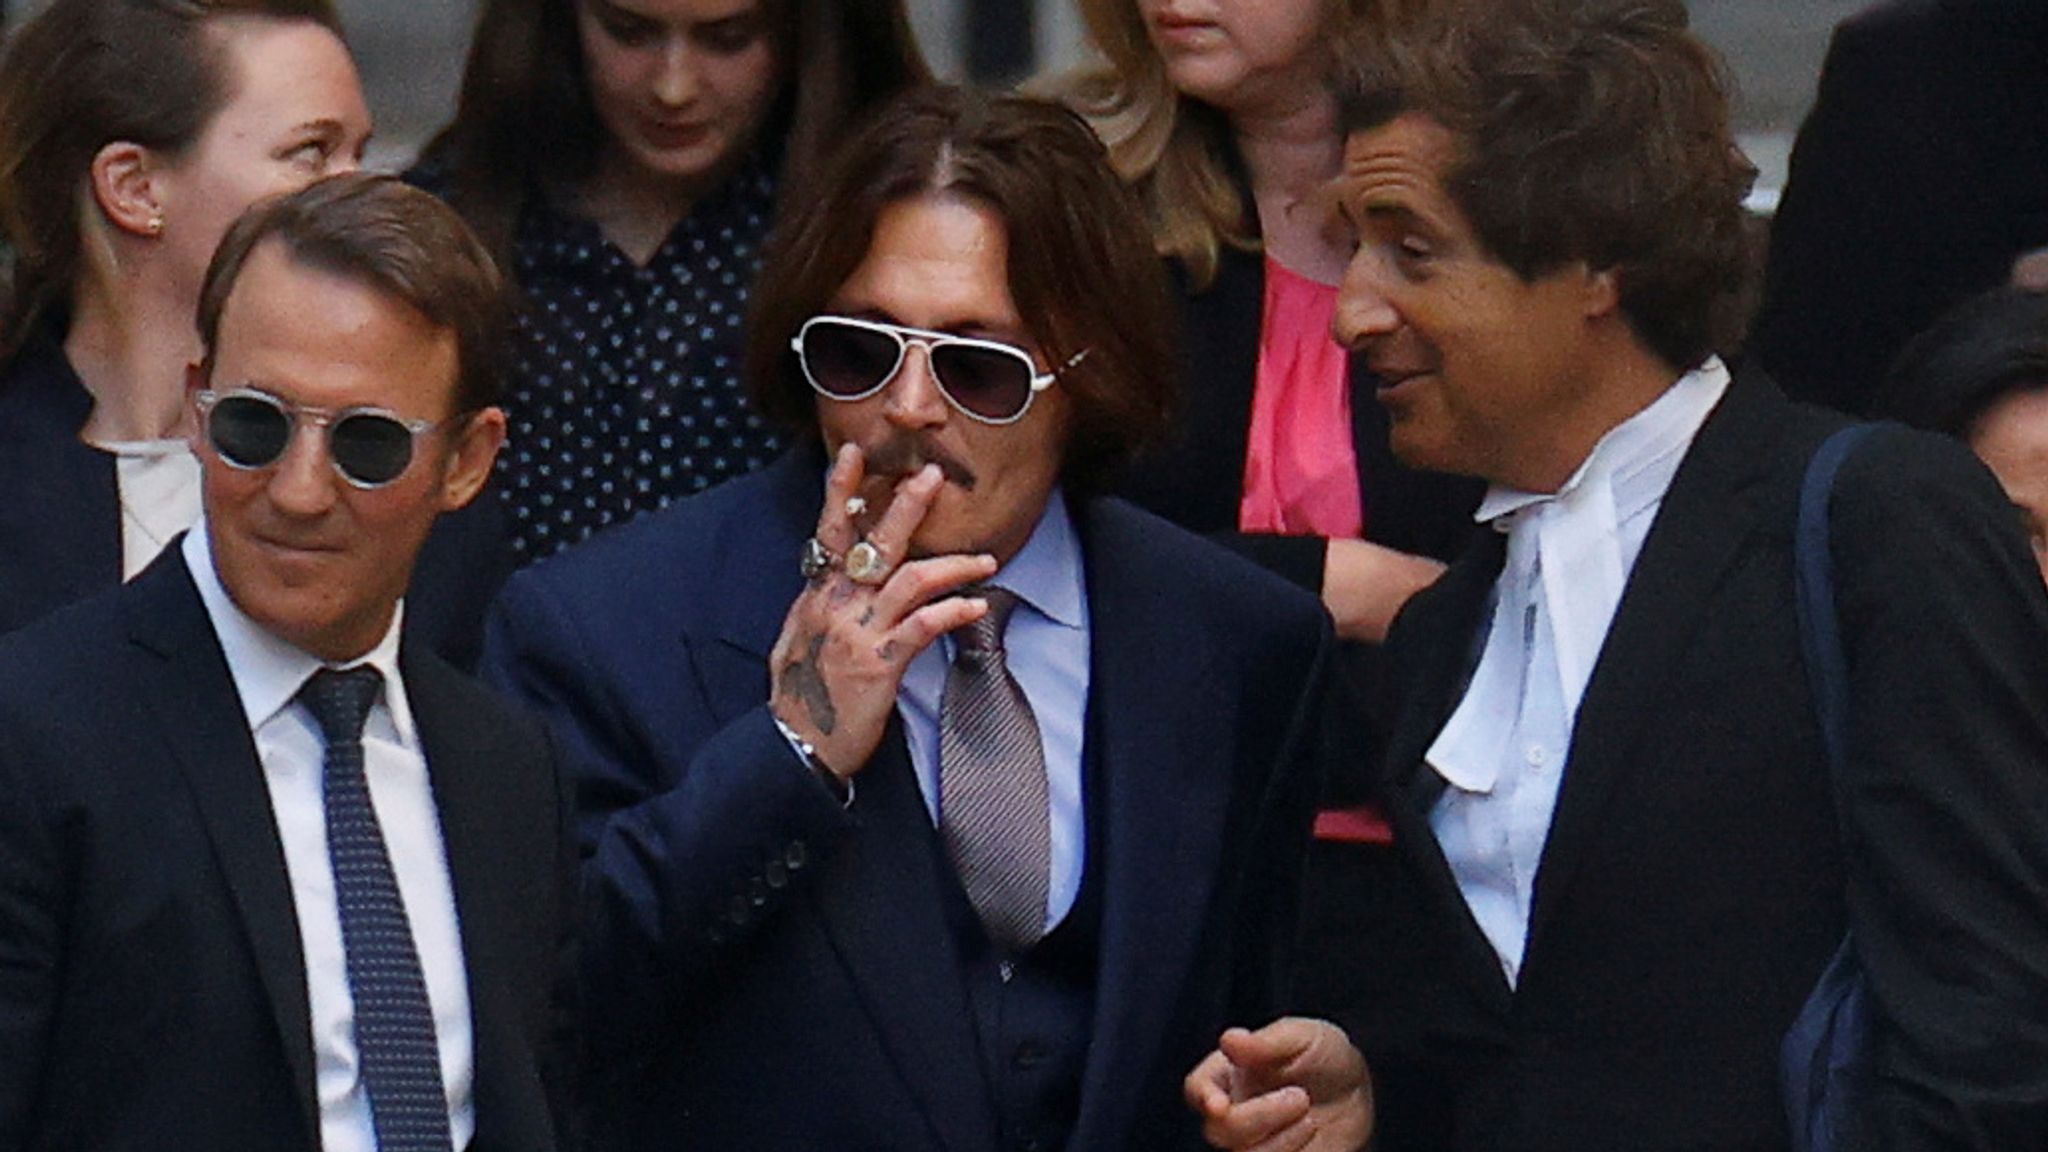 Johnny Depp and his team leave the High Court on 17 July